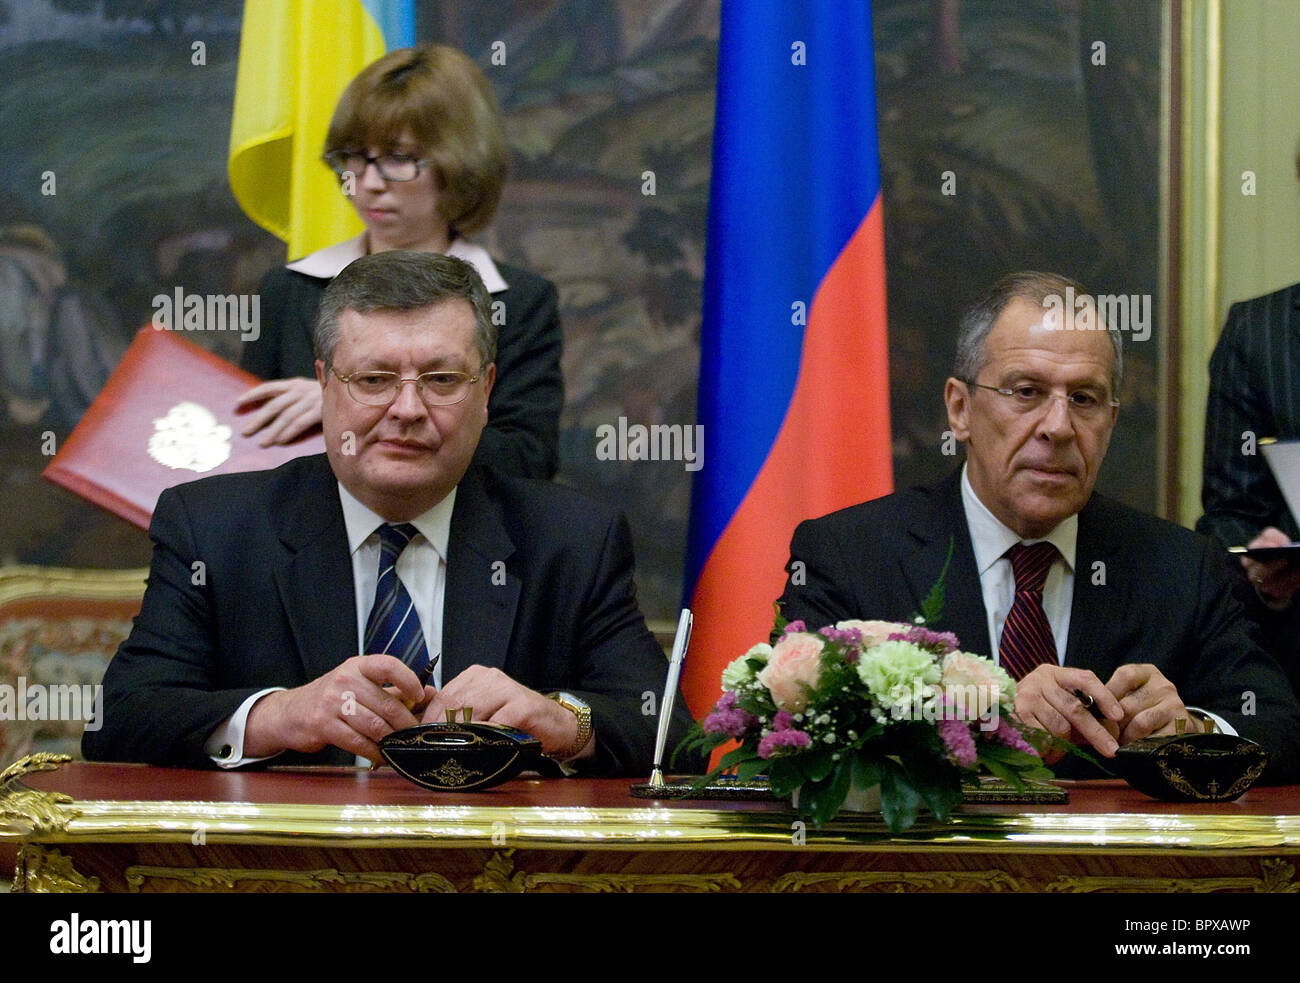 Russian and Ukrainian Foreign Ministers meet for talks - Stock Image